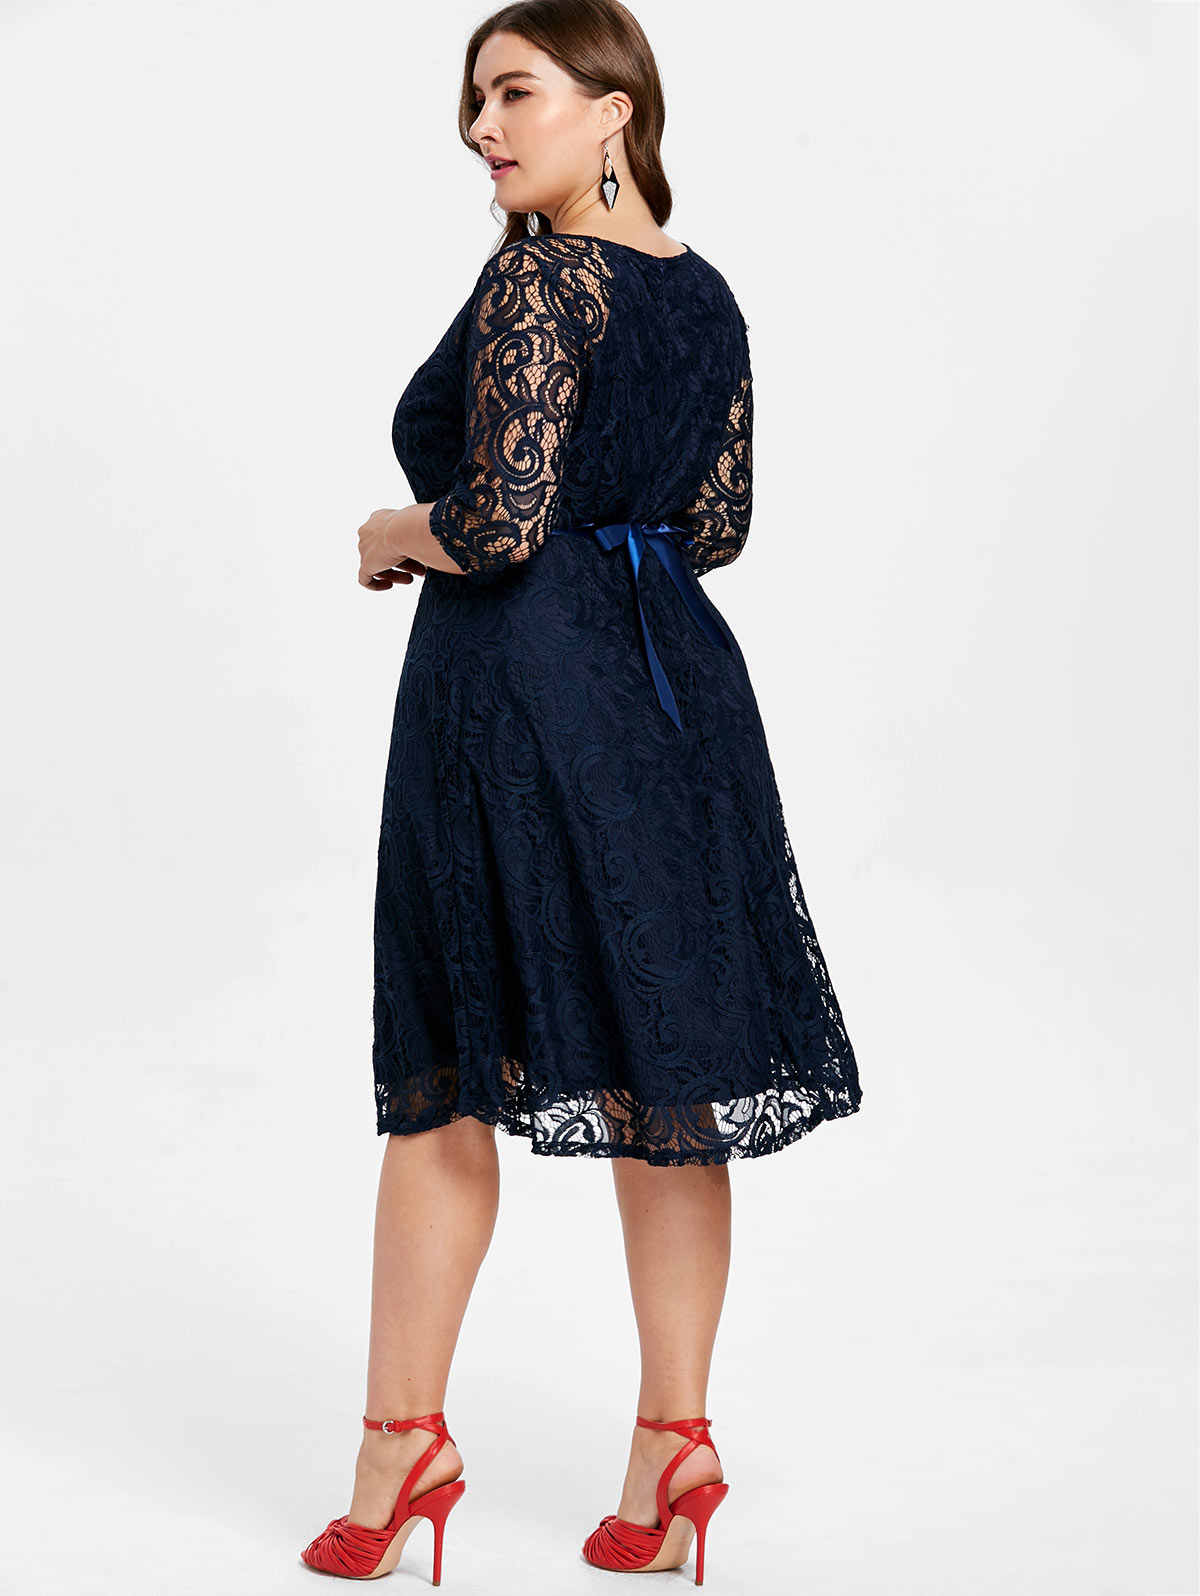 8c9ab920df Wipalo Women Tied Belted Plus Size Lace Knee Length Dress Solid V Neck  Three Quarter Sleeve A Line Party Dress 4XL Vestidos